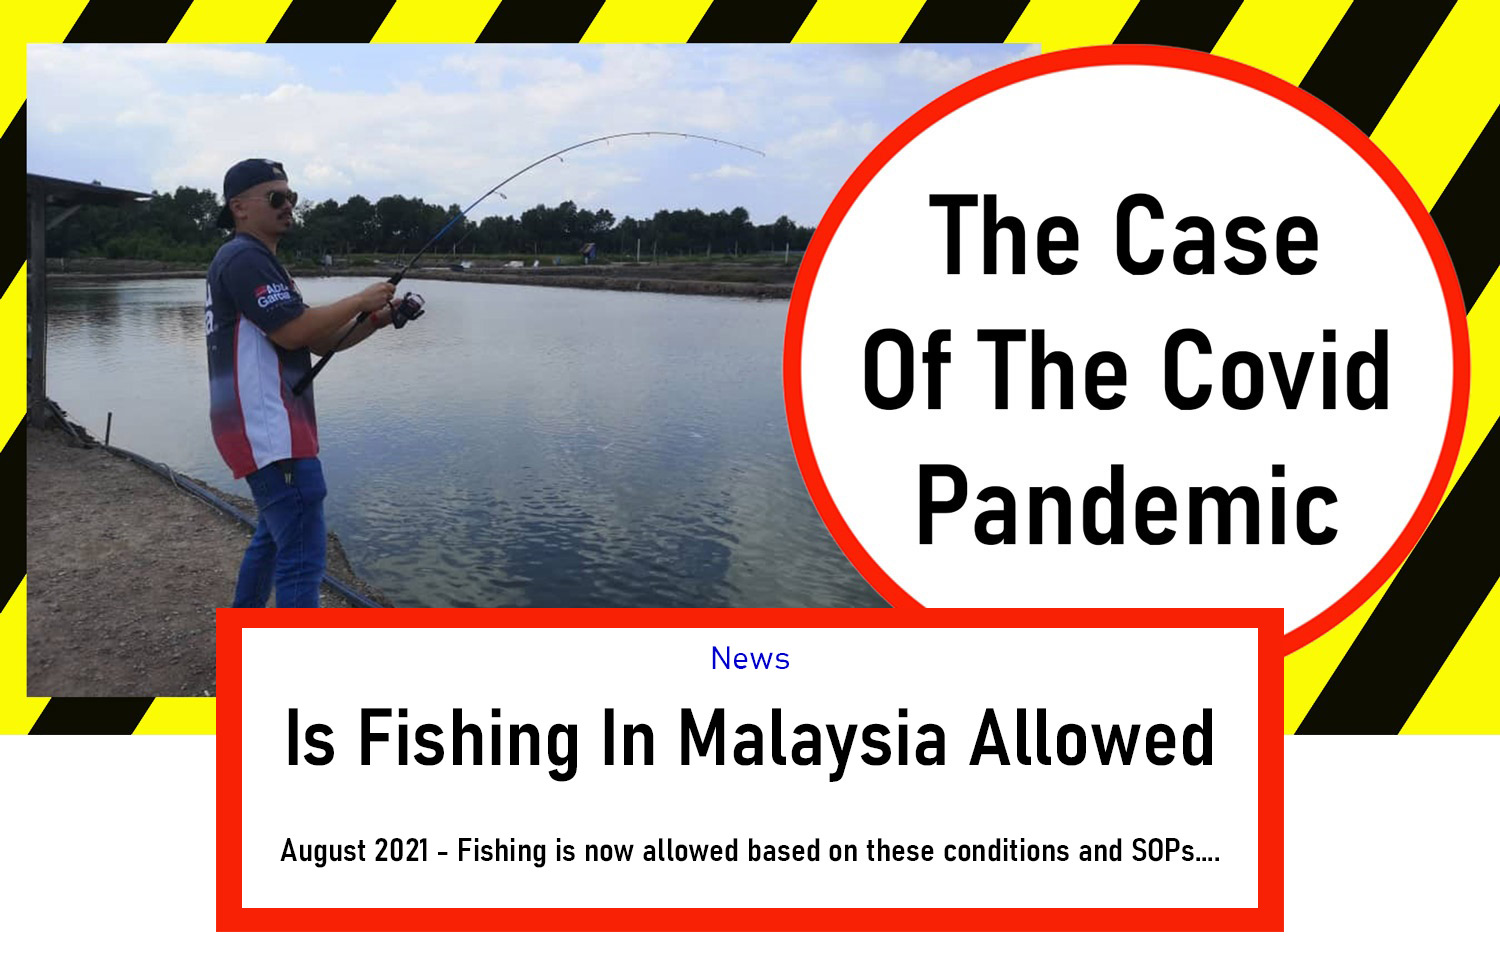 The angler magazine, the angler, fishing Asia, fishing Malaysia, fishing laws Malaysia, covid 19 fishing, fishing during covid, law and fishing, is fishing allowed now, can we fish during the pandemic, can we fish during covid, what are the fishing SOP in Malaysia, Fishing SOP Malaysia, SOP for Fishing, fishing magazine asia, asia fishing magazine, where to fish in asia